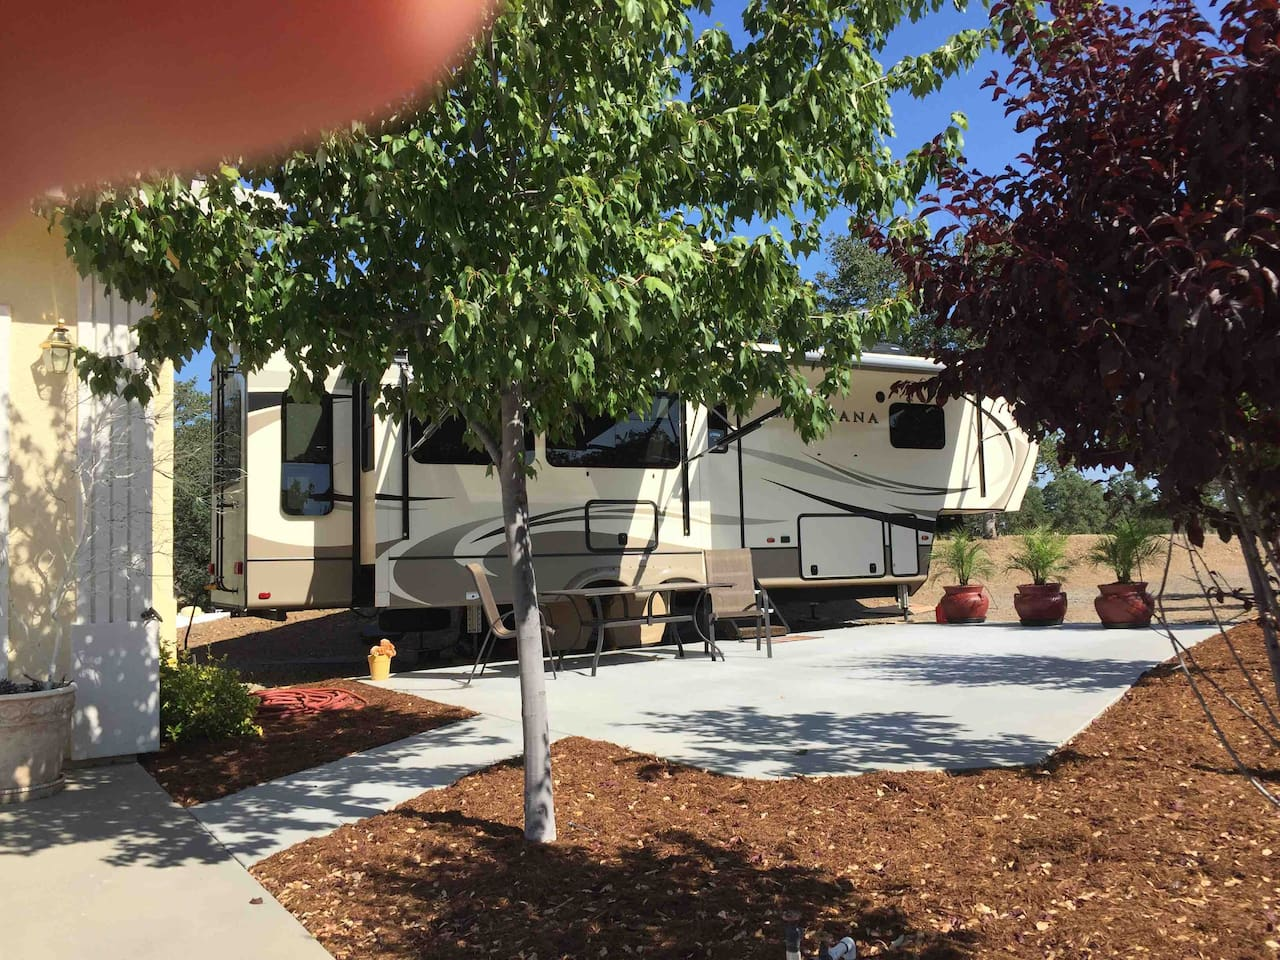 Rv and patio/ sitting area